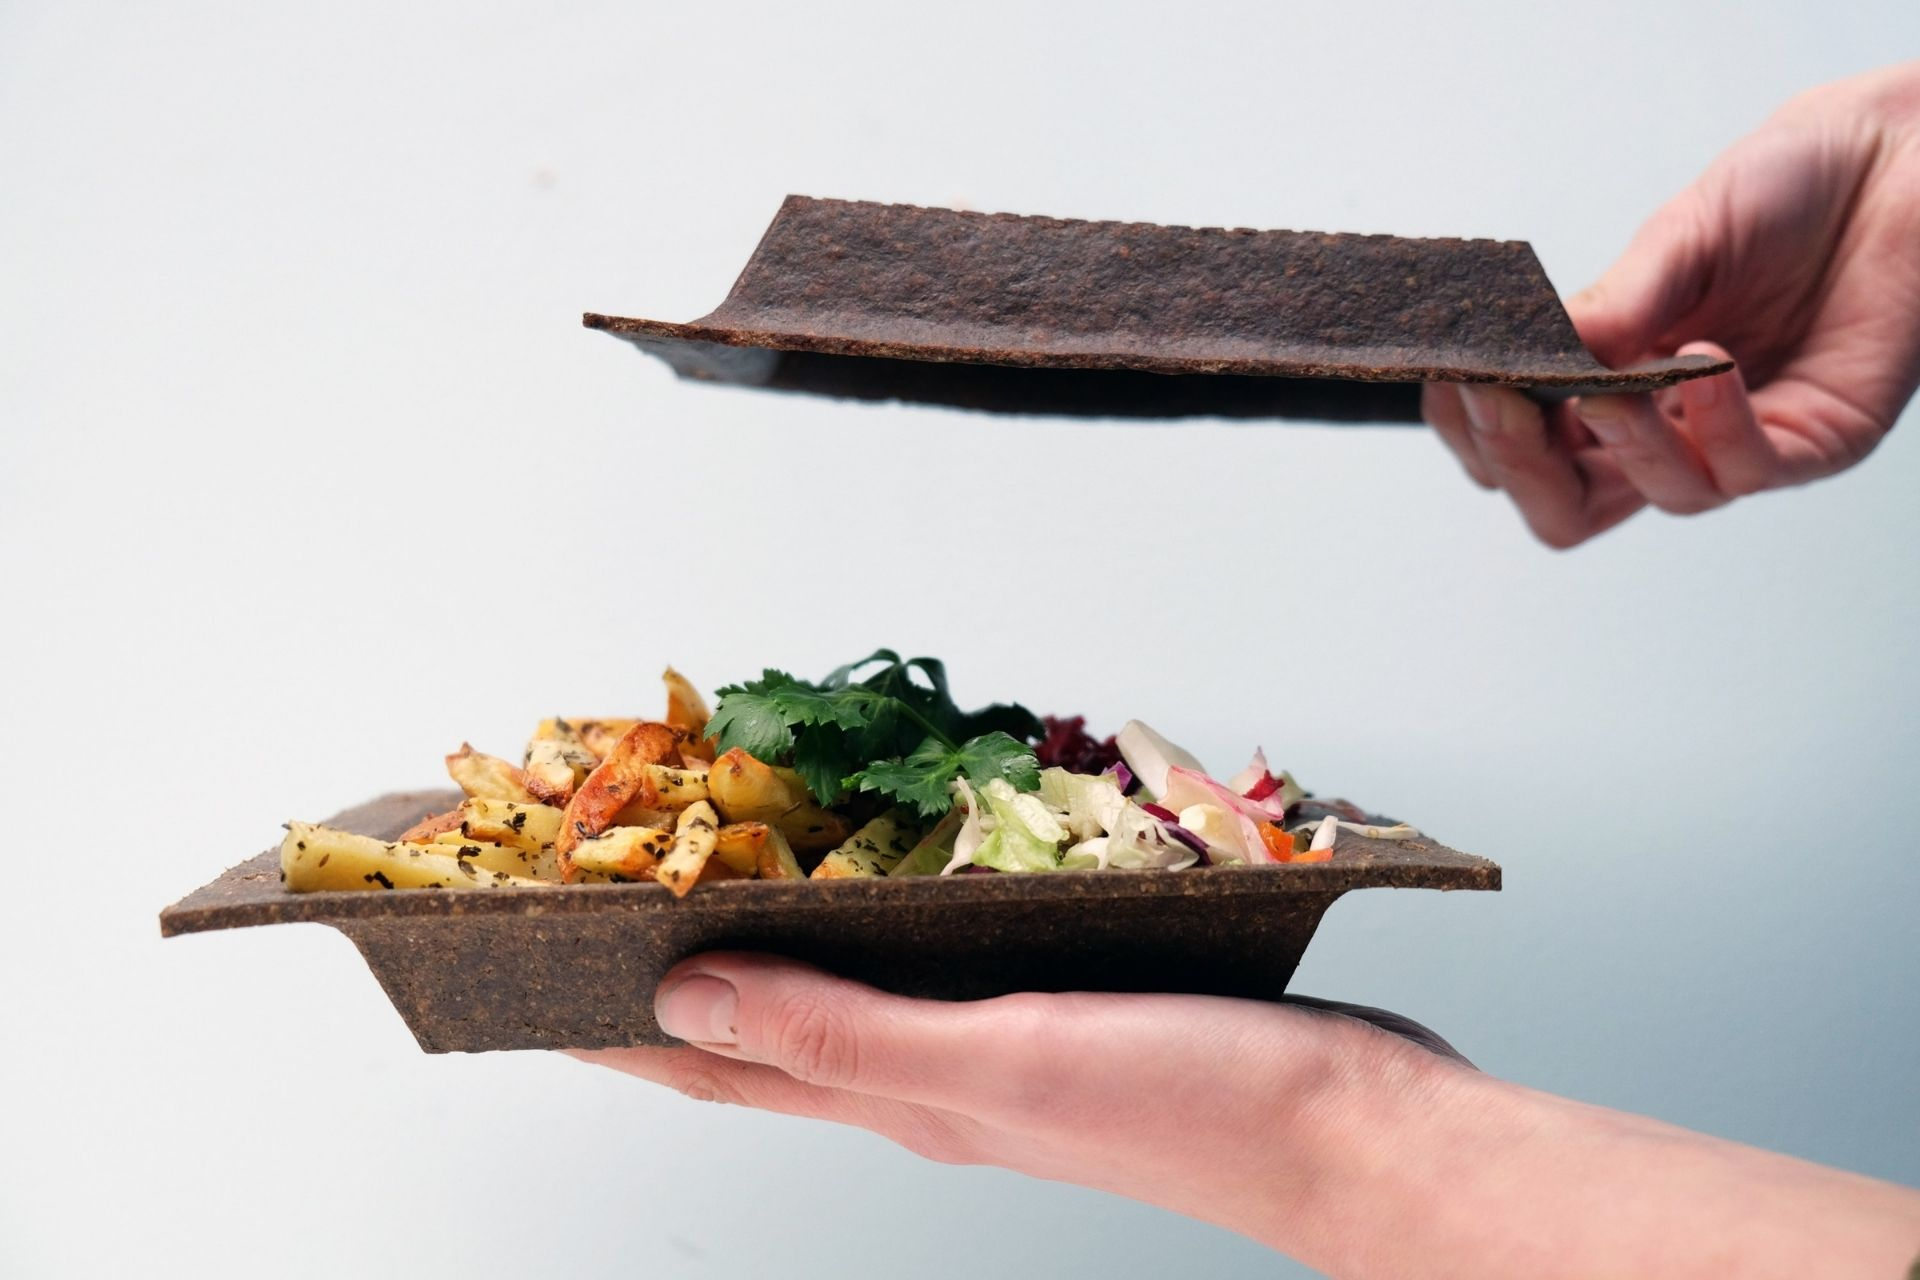 Hands holding Beyond Plastic wheat bran bowl with salad